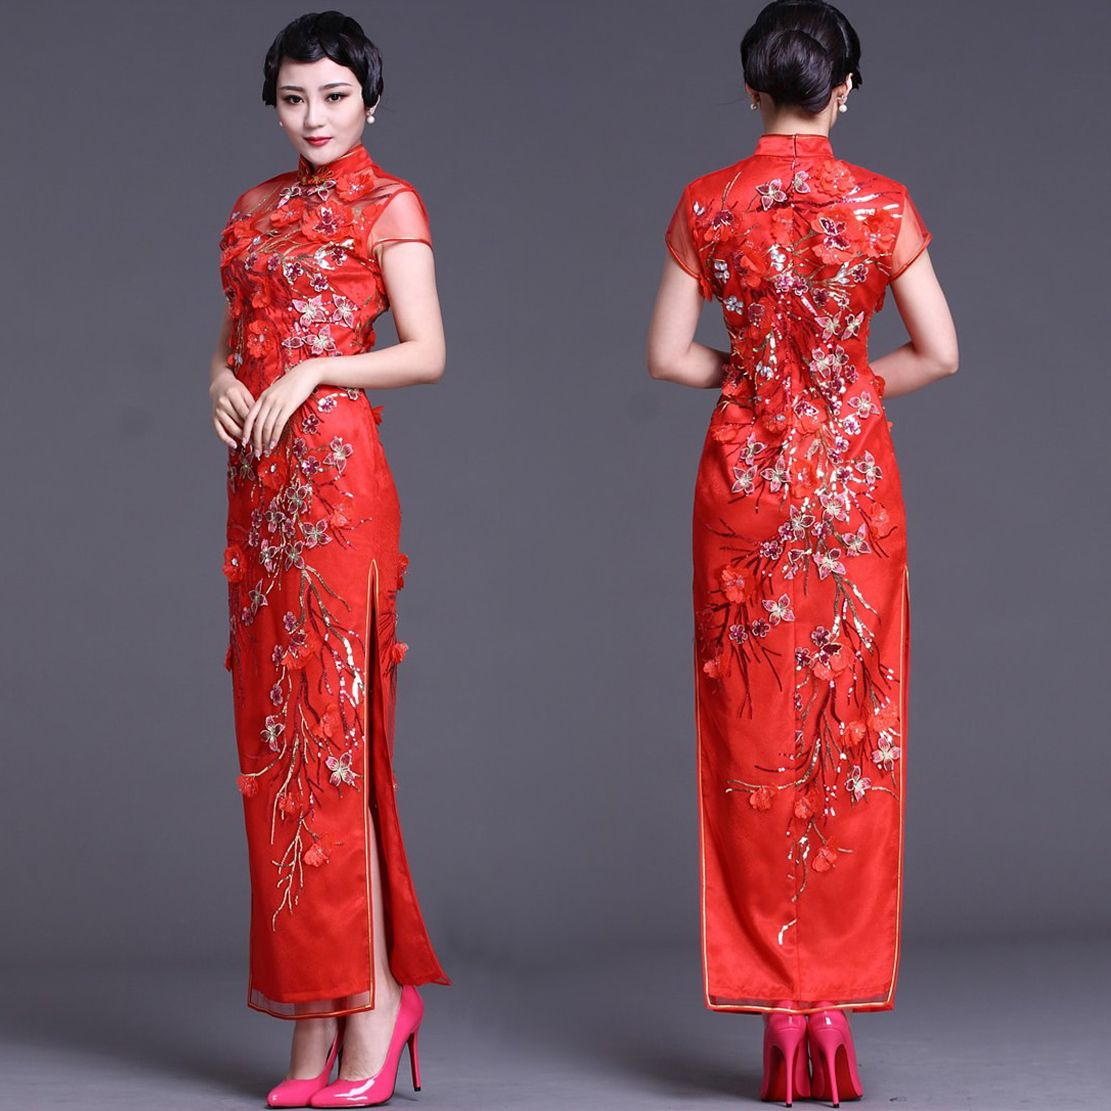 Embroidered-red-floral-gauze-Qipao-traditional-Chinese-wedding ...